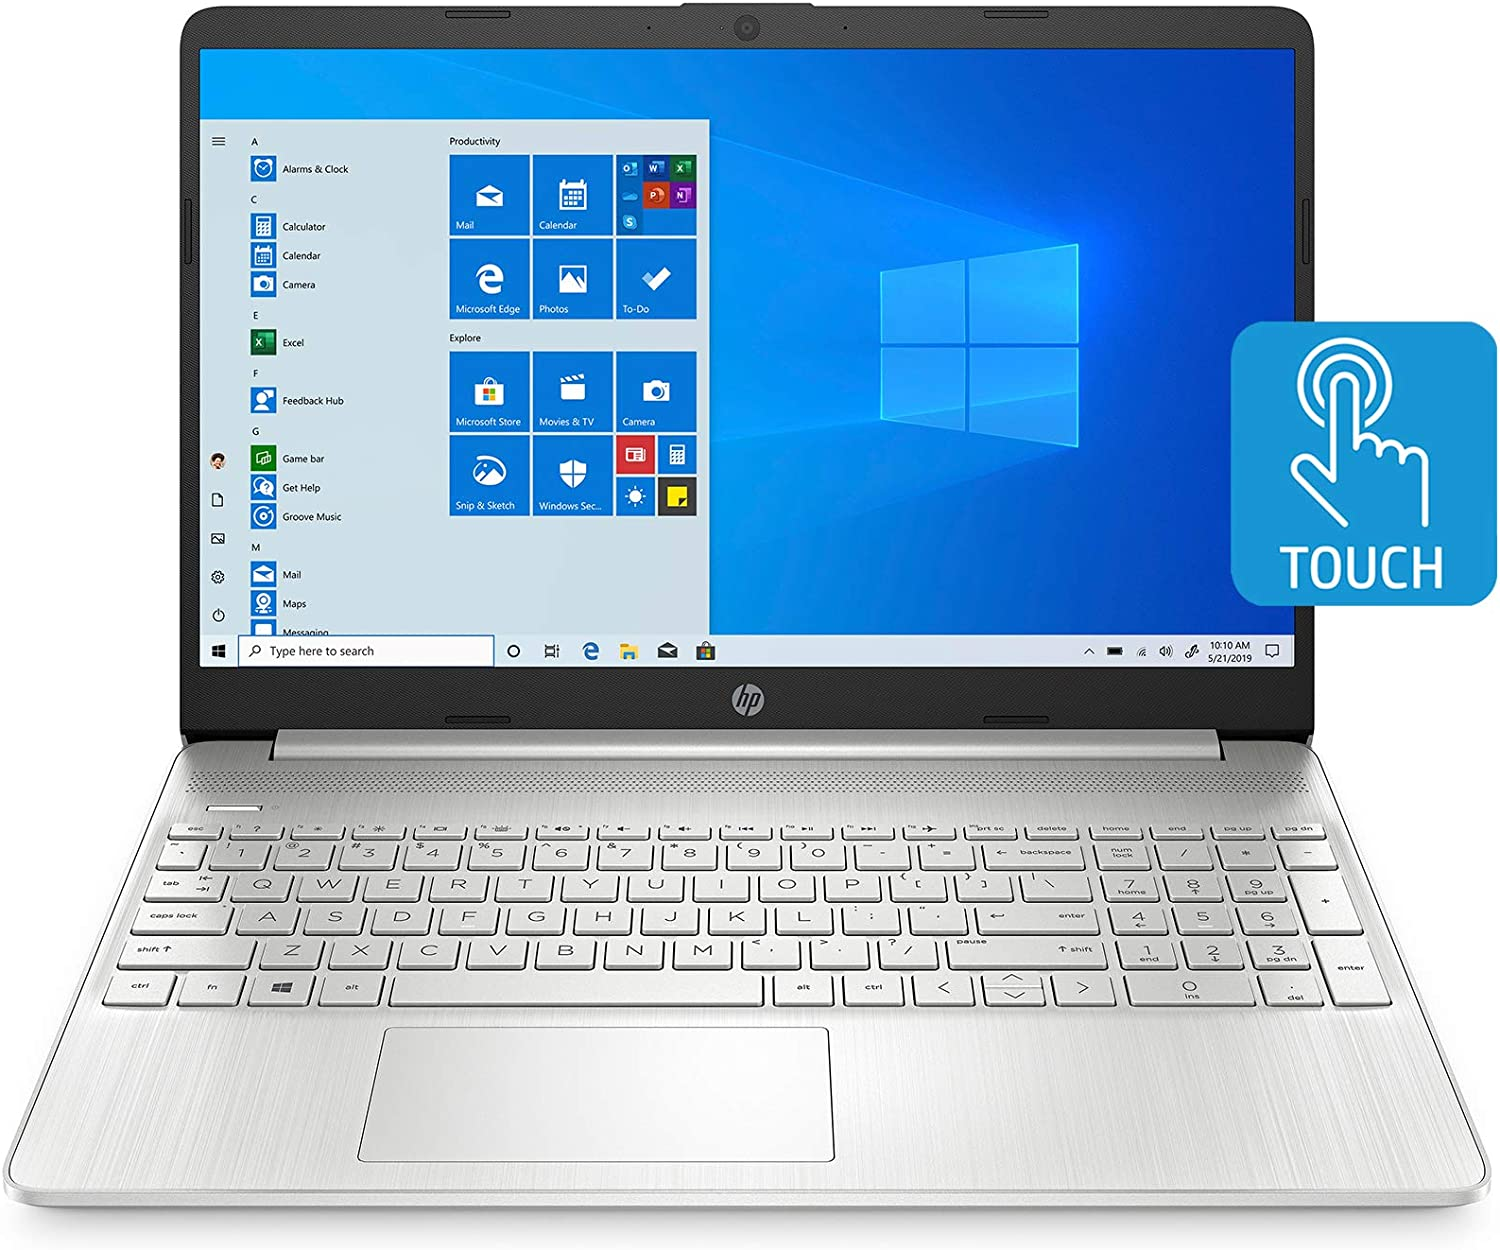 Amazon Com Hp 15 Inch Touchscreen Laptop Amd Ryzen 3 3250u 8 Gb Ram 256 Gb Ssd Windows 10 Home In S Mode 15 Ef1020nr Natural Silver Computers Accessories